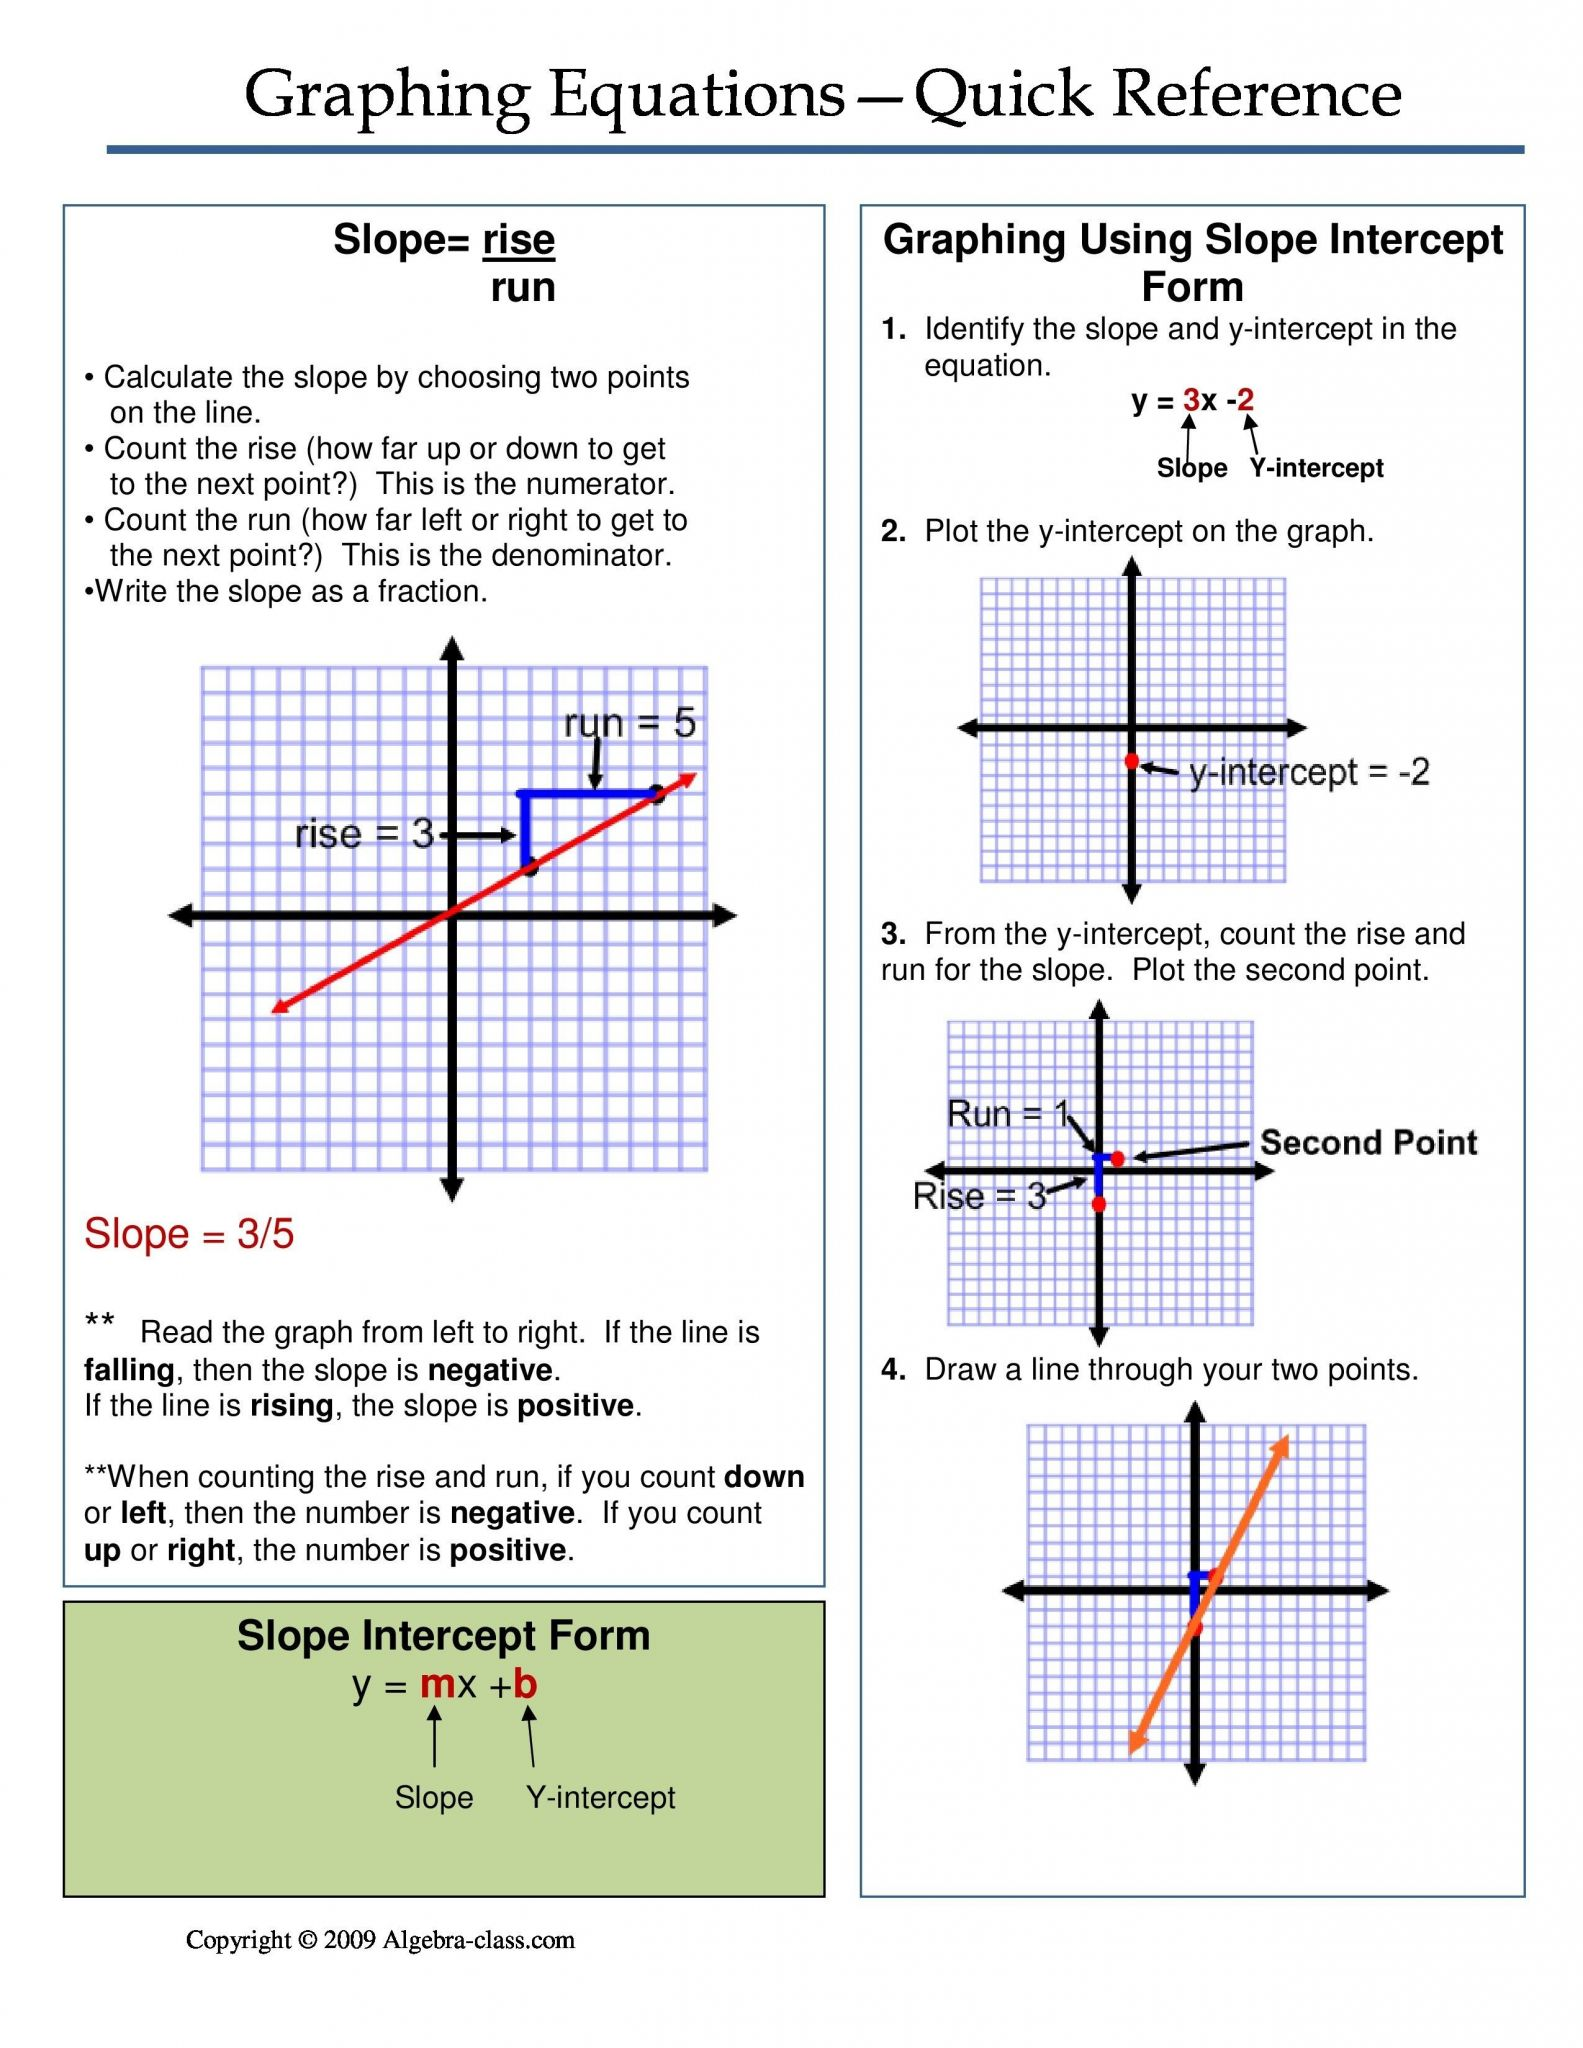 Graphing Polynomial Functions Worksheet Answers